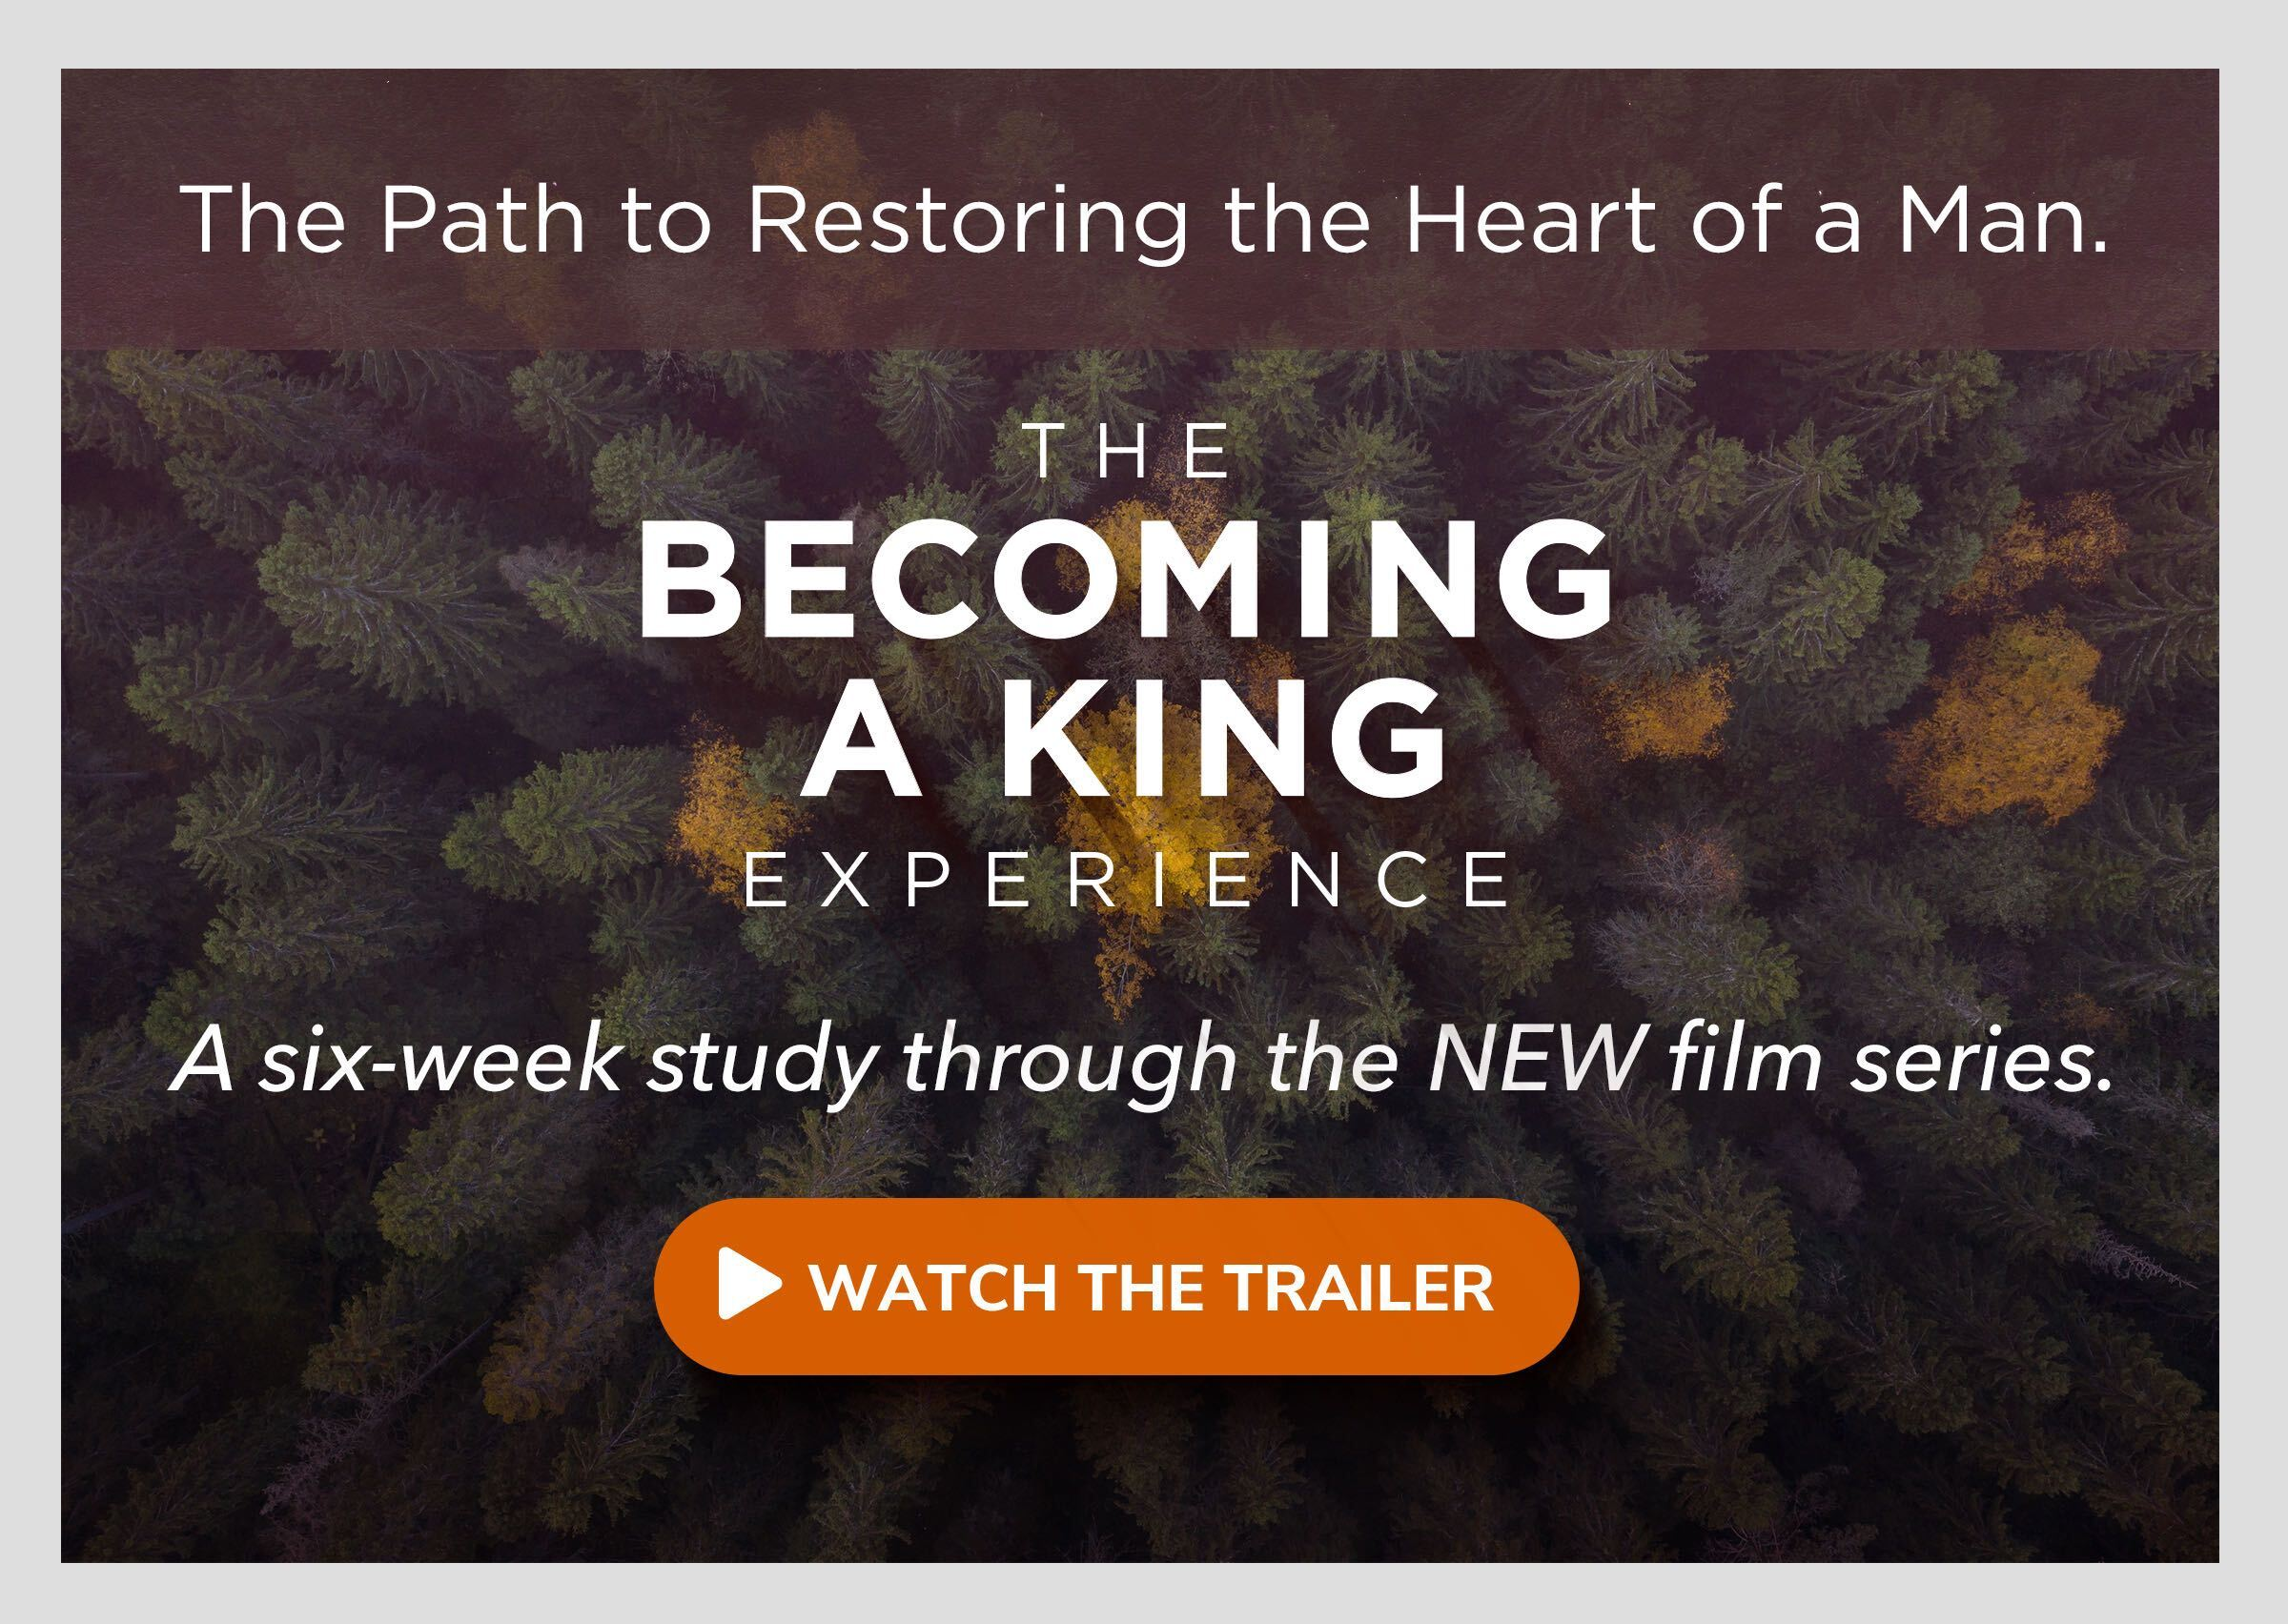 The Becoming a King Experience